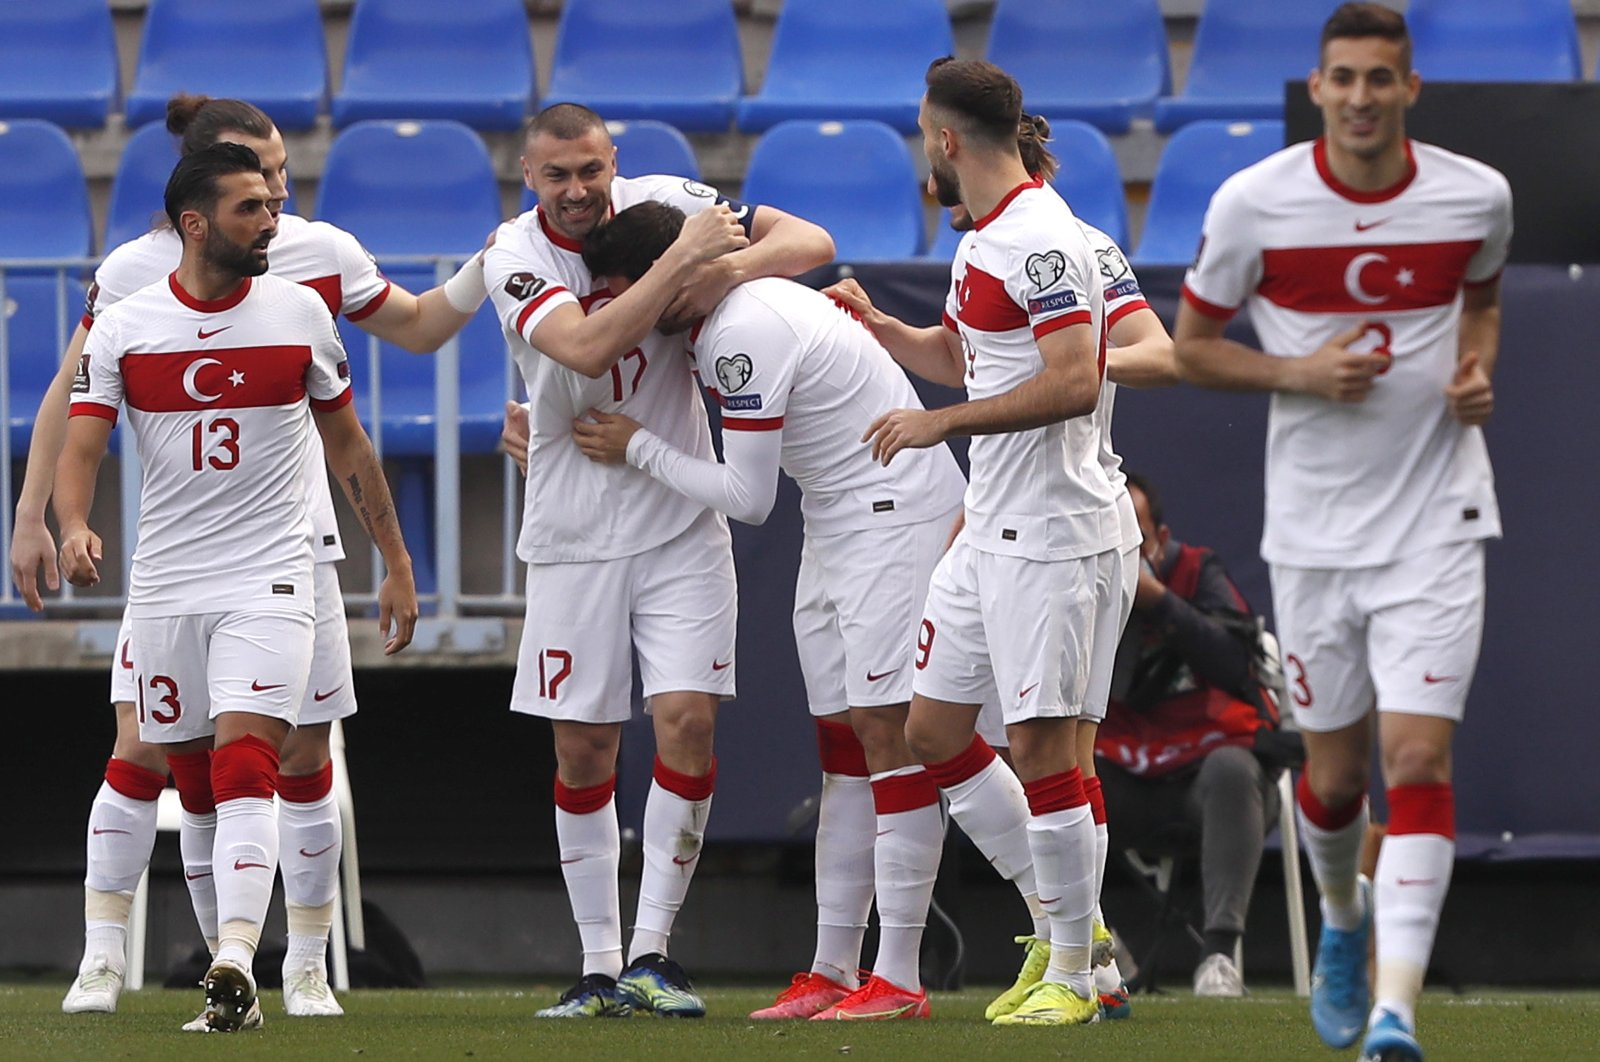 Turkey's midfielder Ozan Tufan (C) celebrates with teammates after scoring the 1-0 lead in the Group G of FIFA World Cup Qatar 2022 qualifier soccer match between Norway and Turkey held at La Rosaleda stadium, in Malaga, southern Spain, March 27, 2021. (EPA Photo)